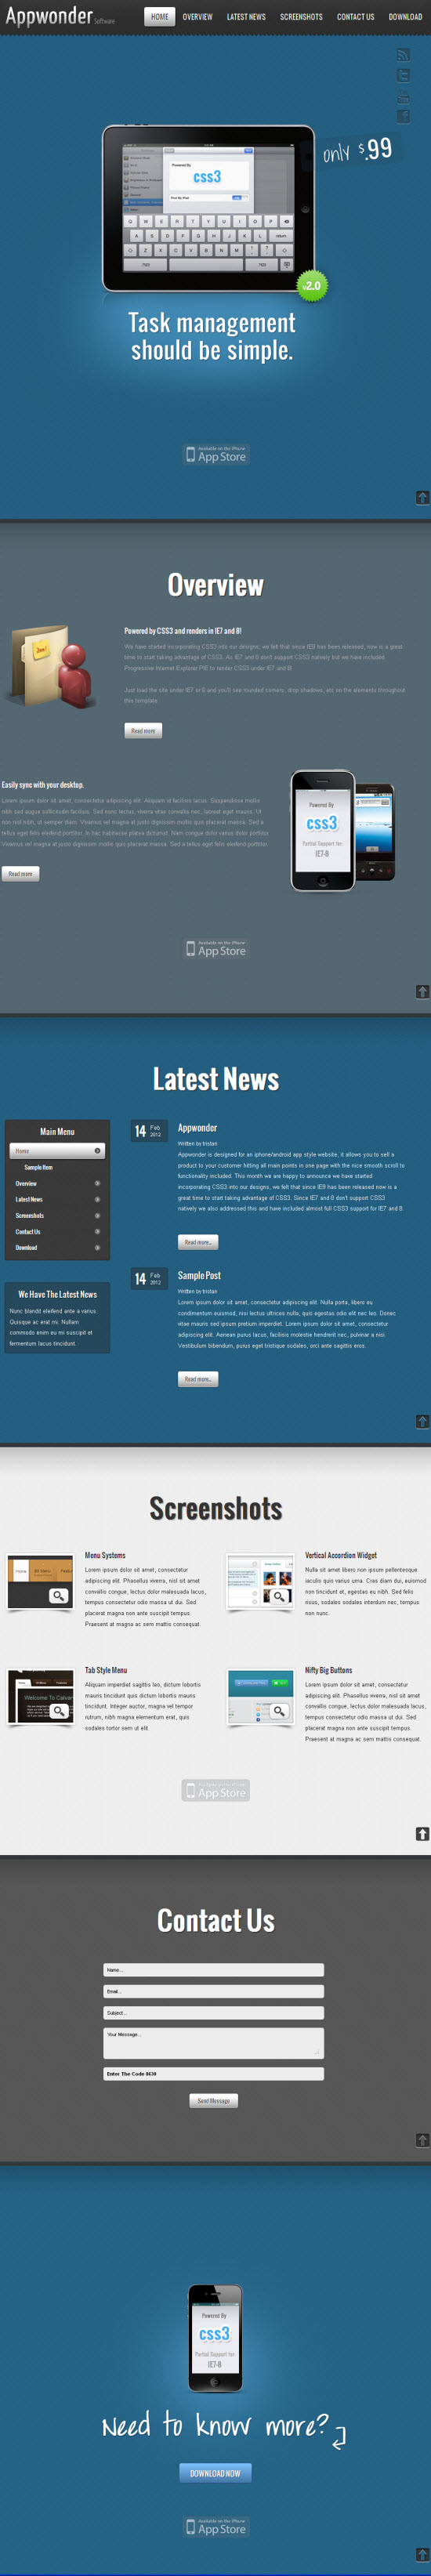 Appwonder WordPress Theme